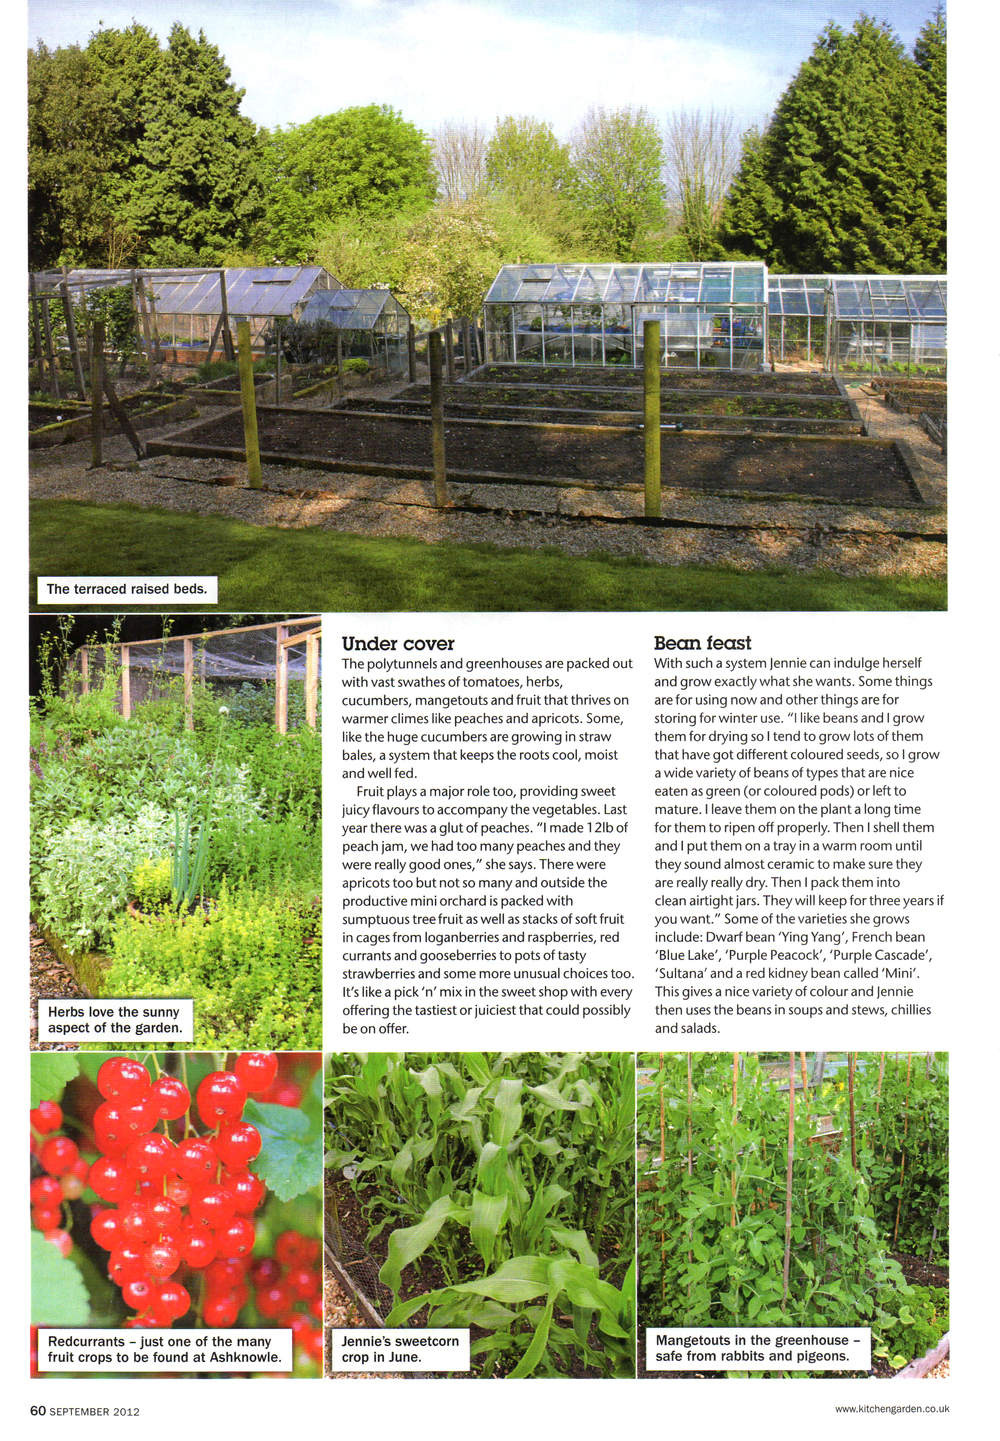 Kitchen Garden-Ashknowle-3.jpg